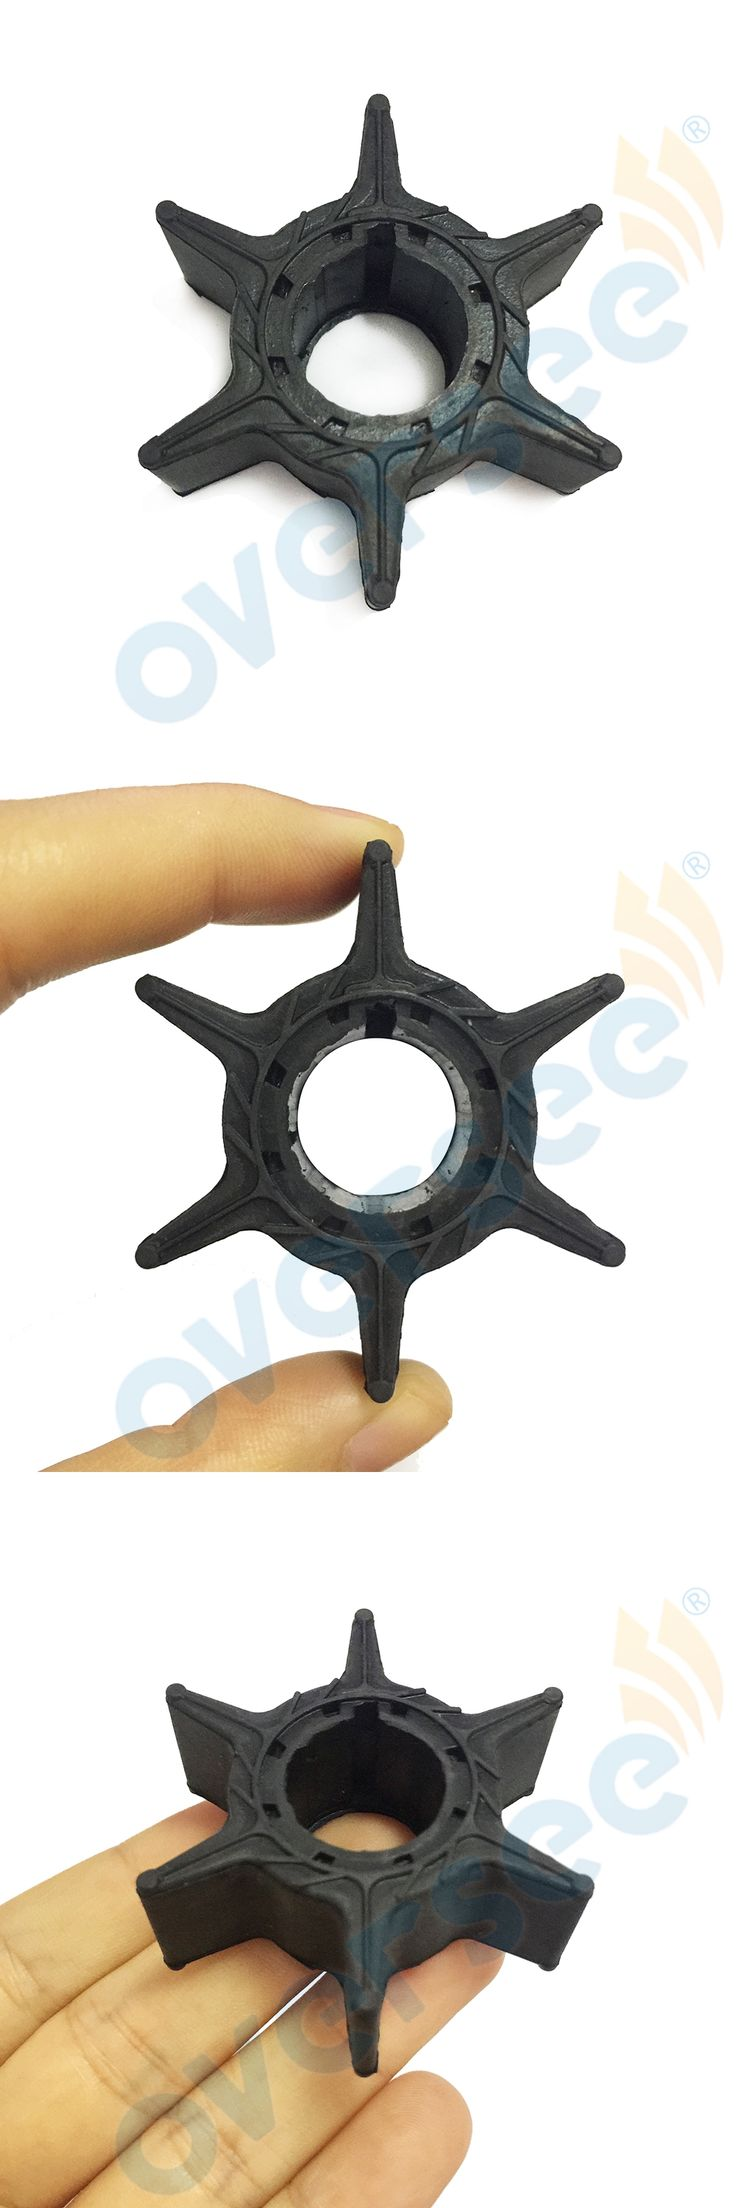 6H3-44352 Impeller for Yamaha 40-70HP Outboard Engine 48-60HP Boat Motor Aftermarket Parts 6H3-44352-00